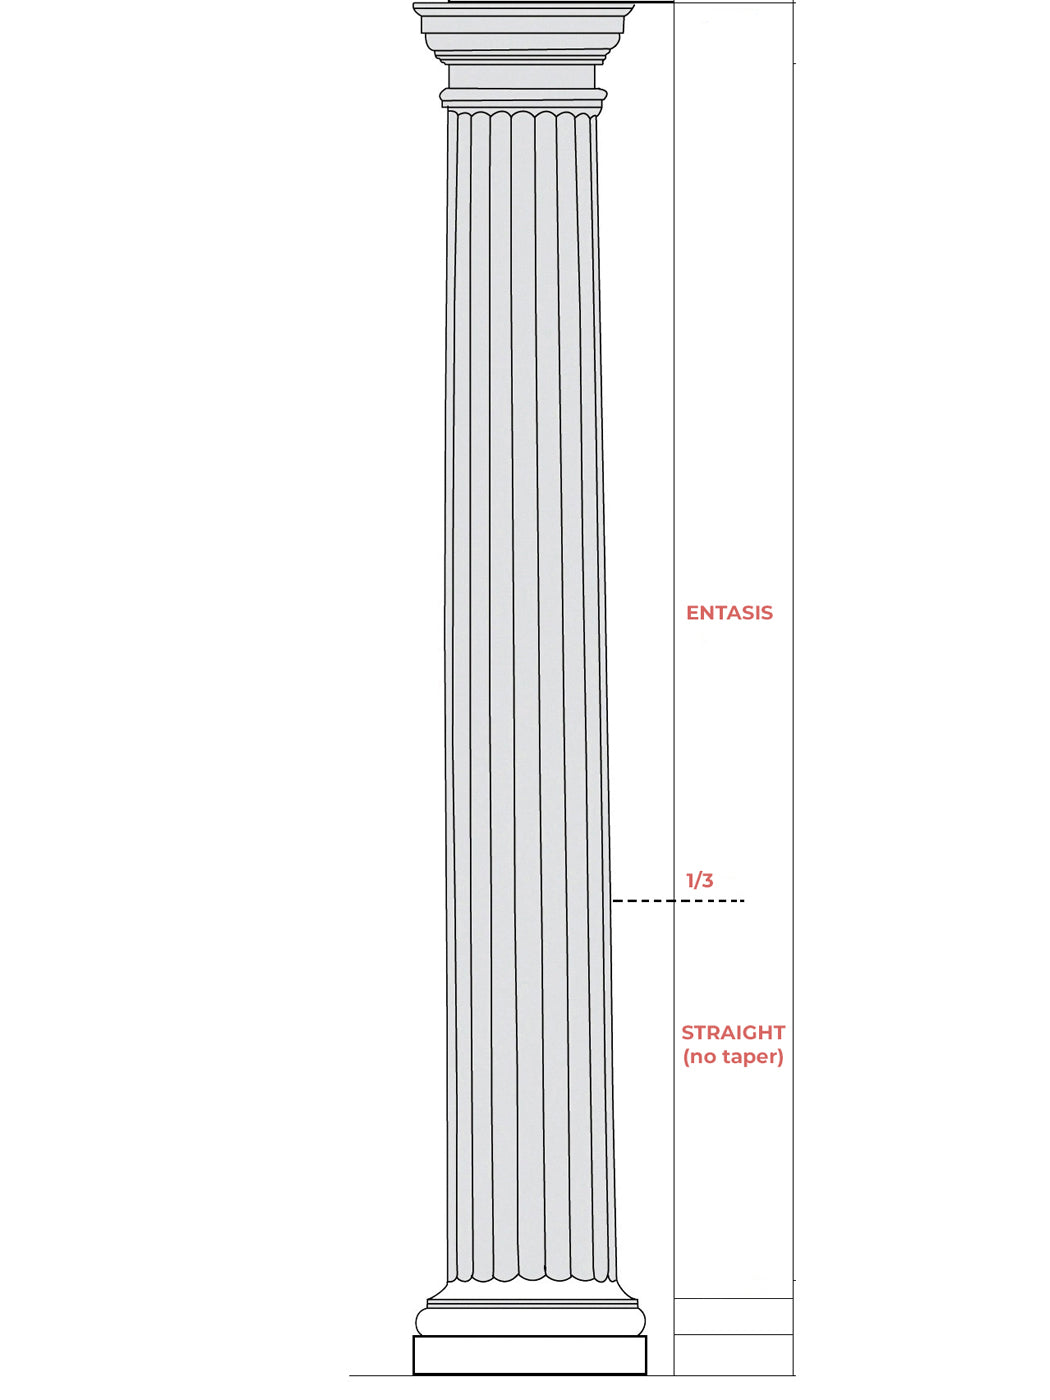 Taper Column Drawing - Illustrated Glossary - ColumnsDirect.com